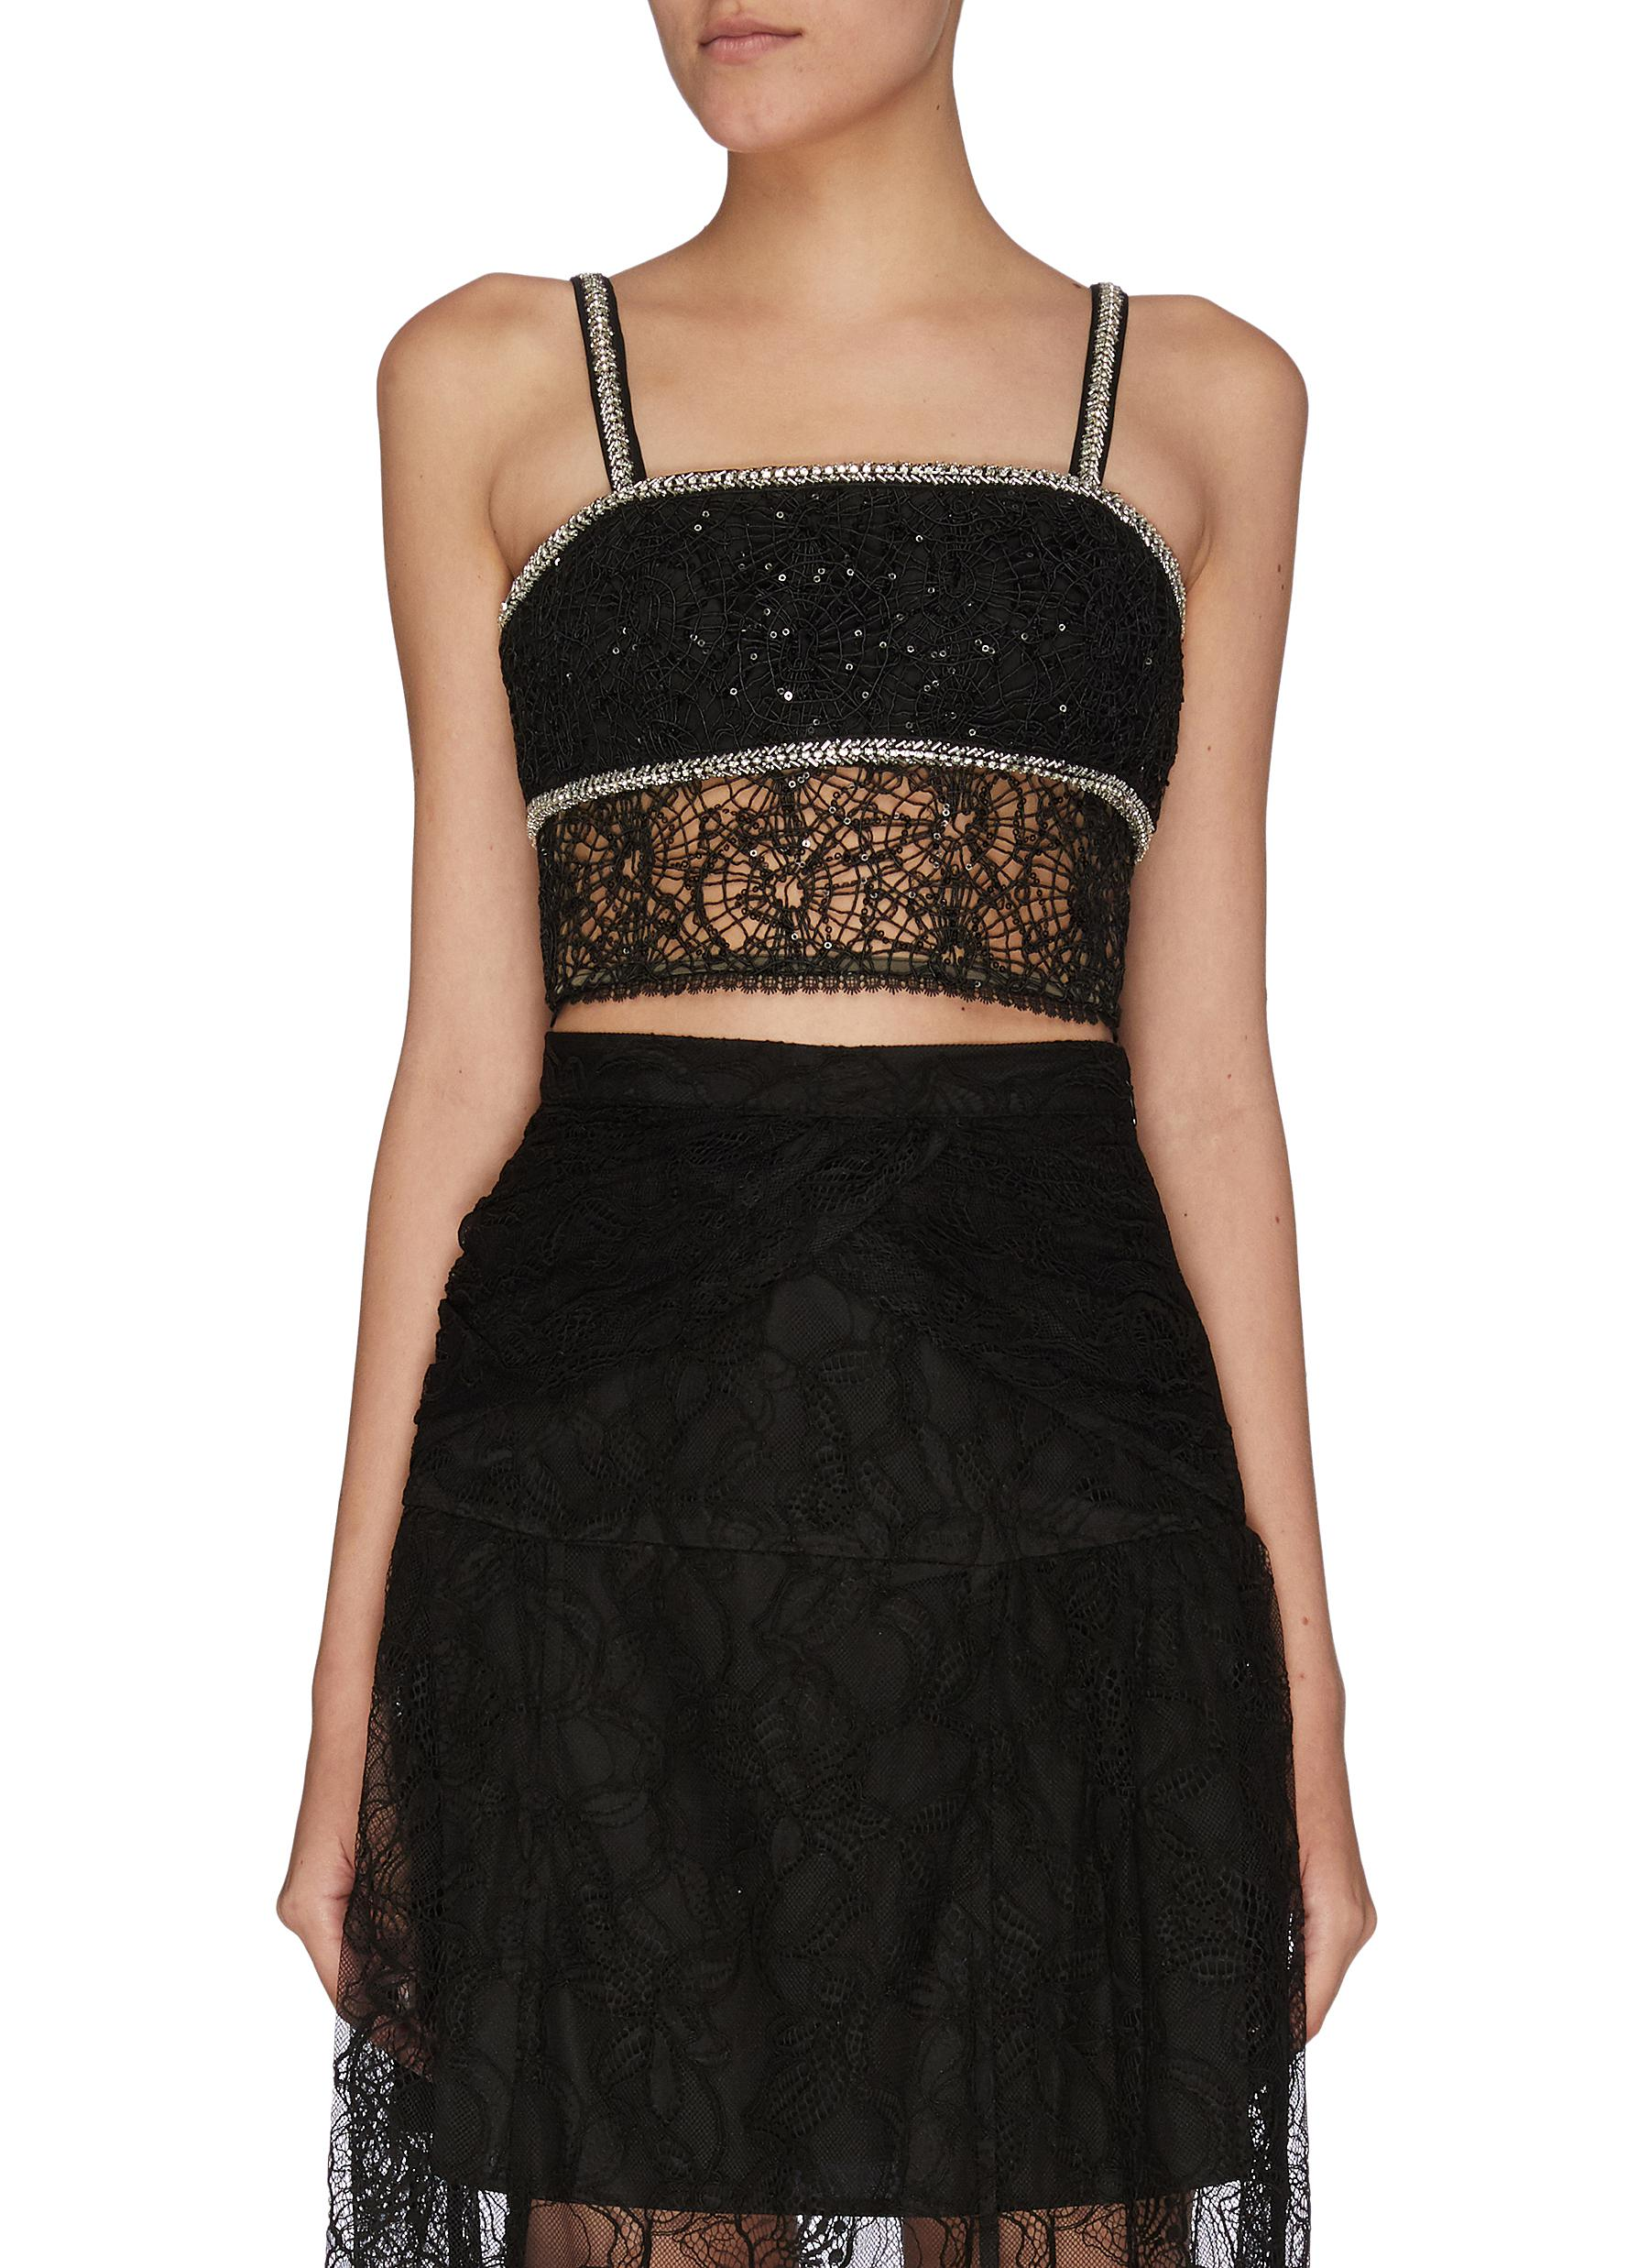 Sequin circle lace crop top - SELF-PORTRAIT - Modalova